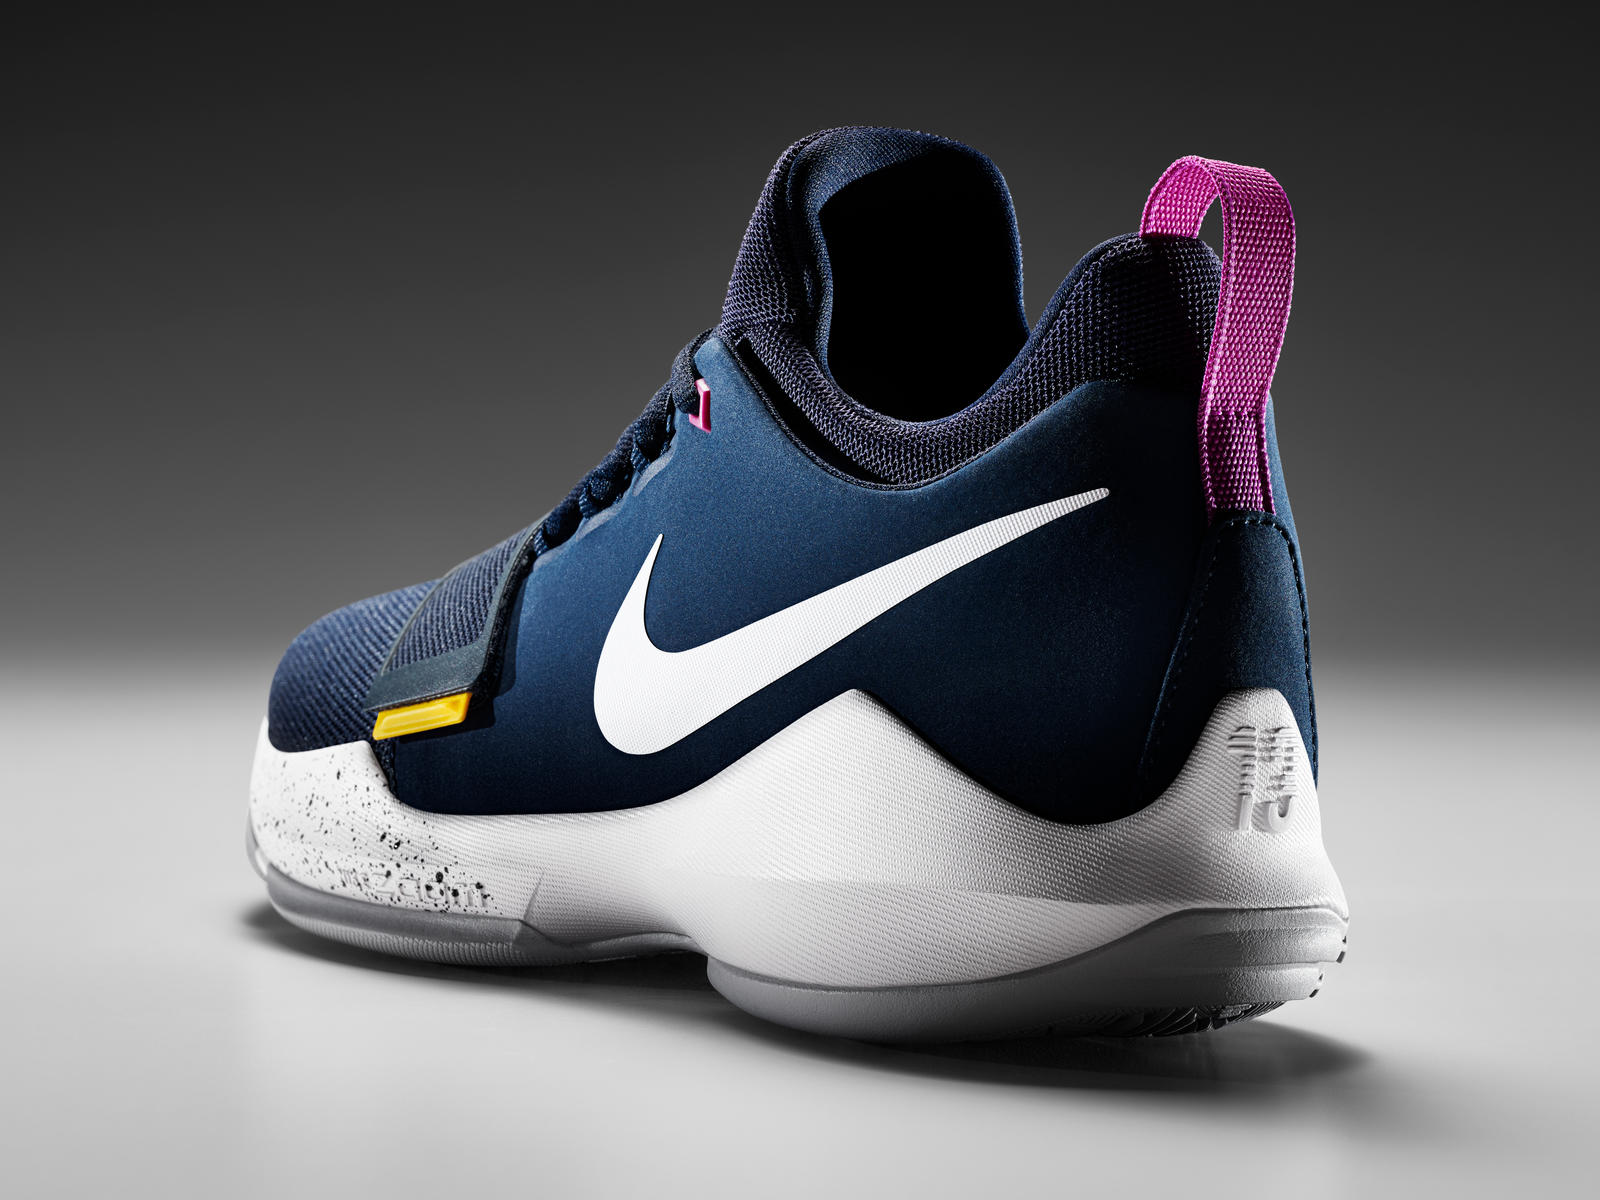 bda276b08892 10 Things To Know About the PG1 - Nike News